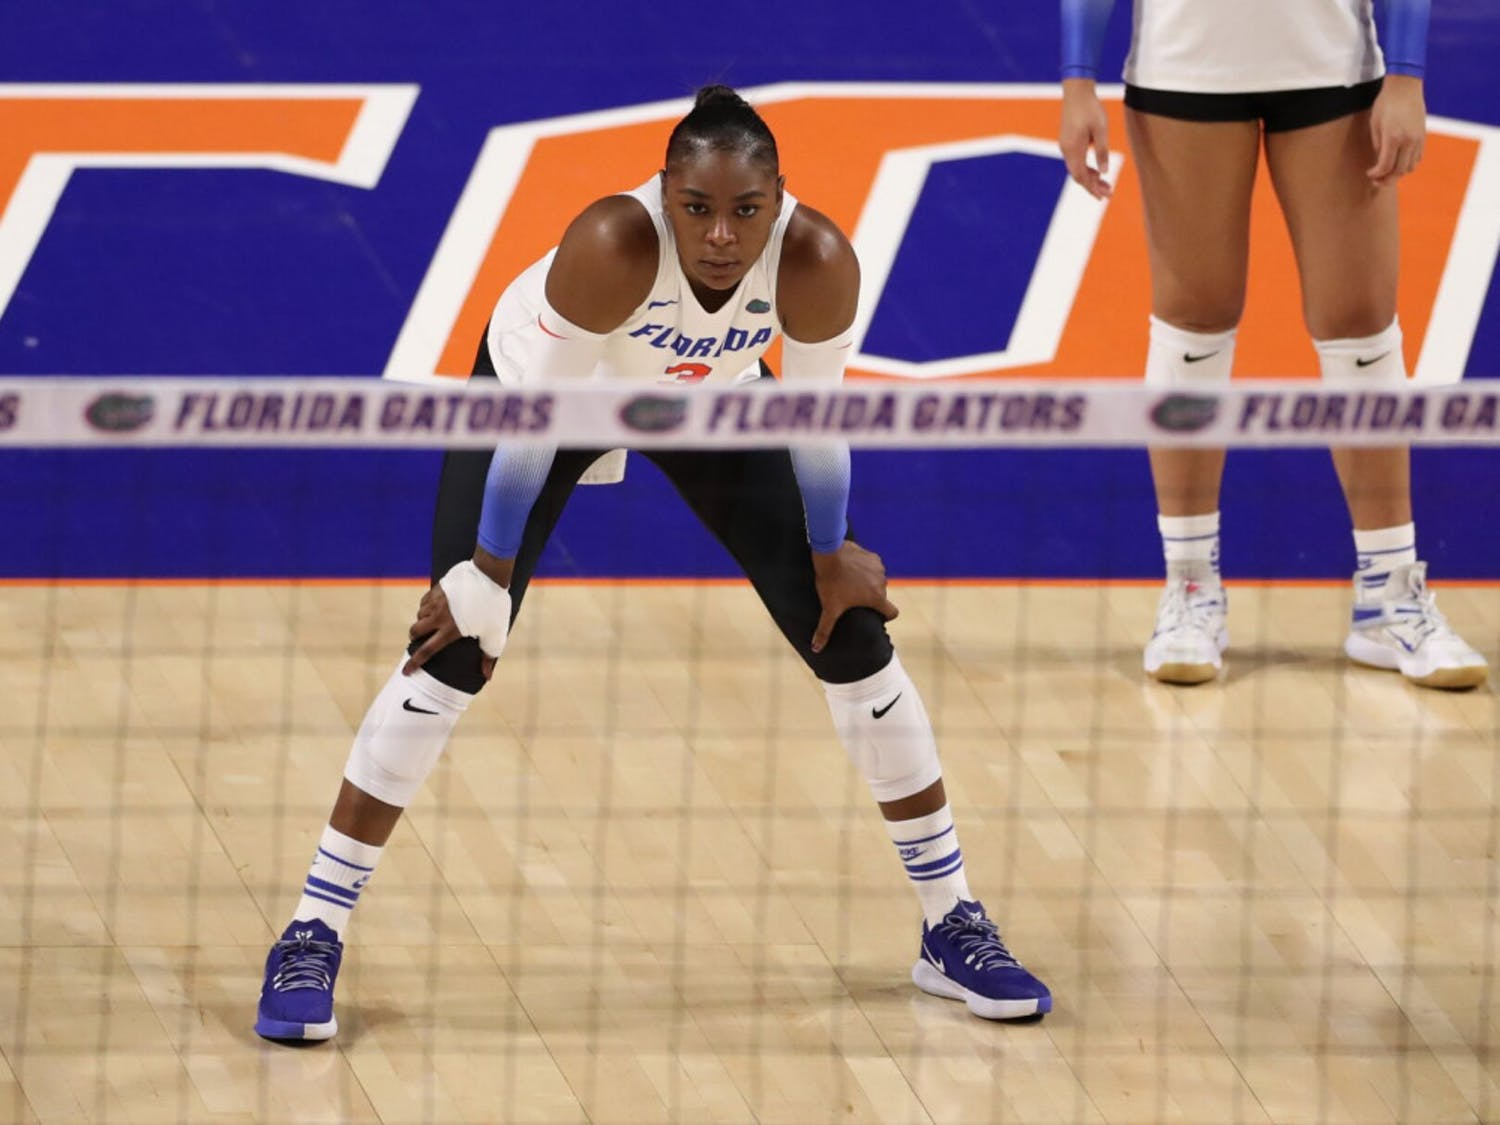 Outside hitter T'ara Ceasar during the Gators' match against the Georgia Bulldogs on Friday, November 20, 2020 at Exactech Arena at the Stephen C. O'Connell Center in Gainesville, Florida.